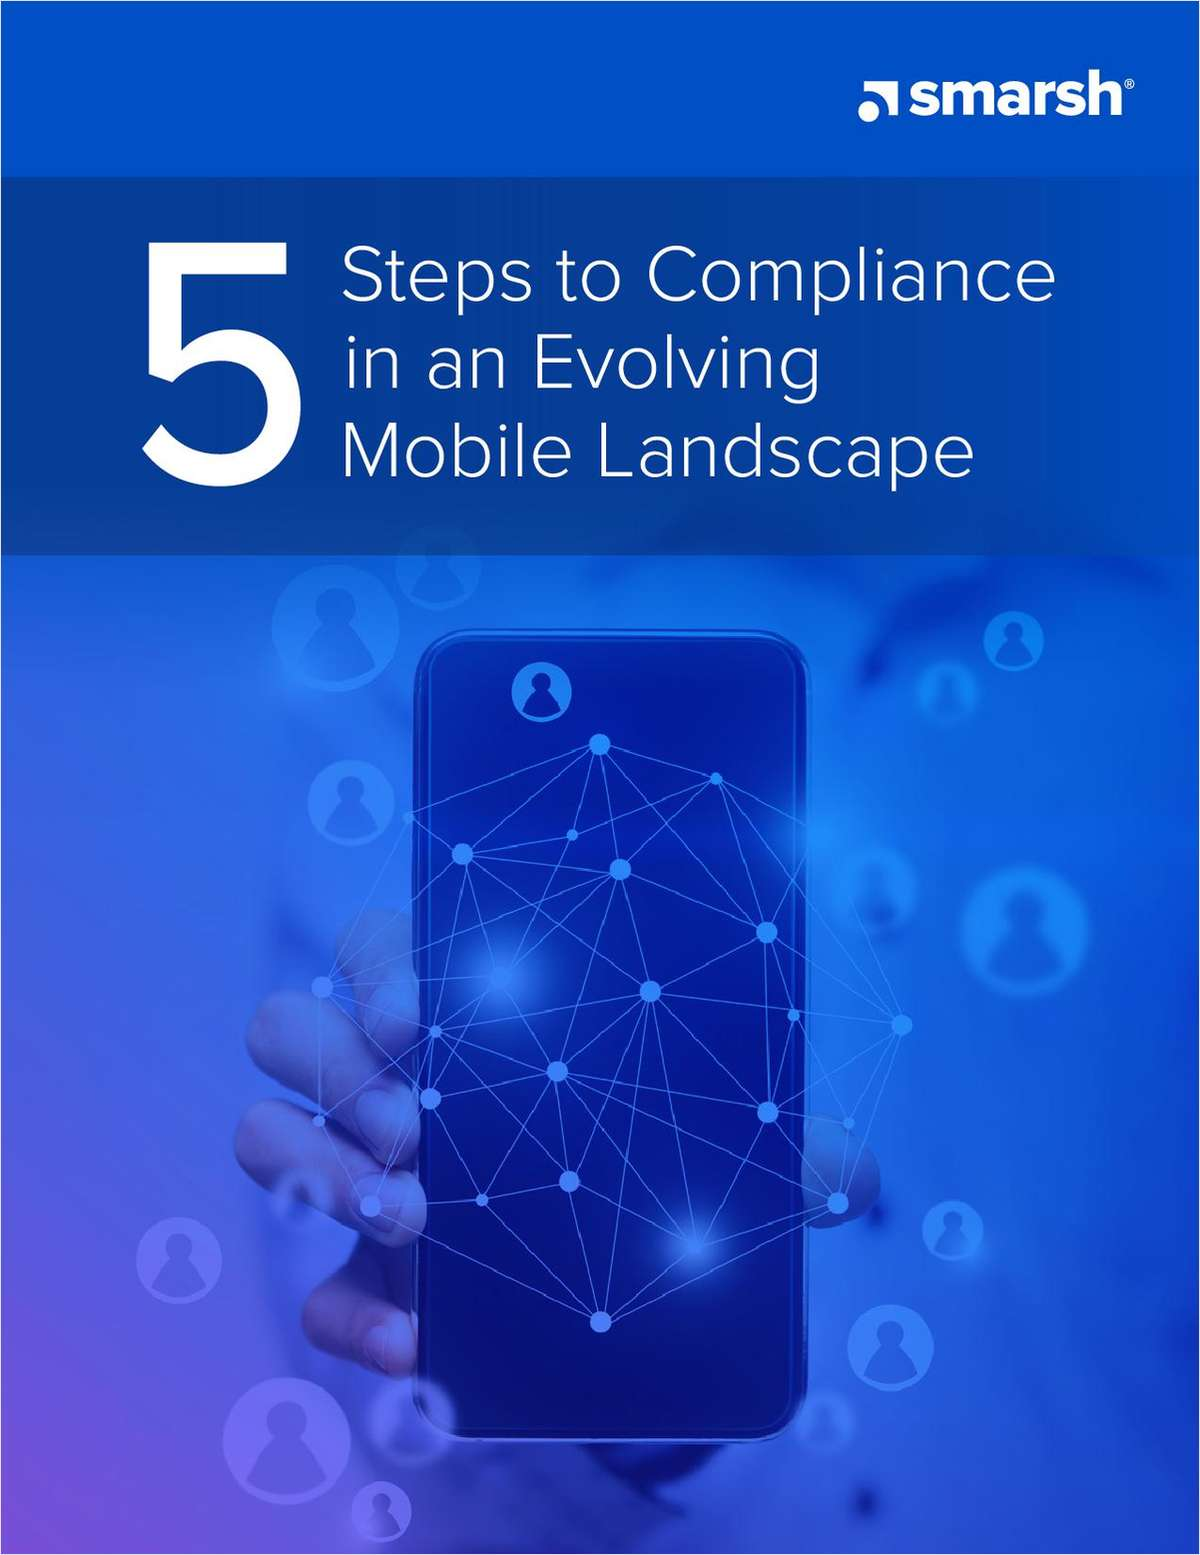 5 Steps to Compliance in an Evolving Mobile Landscape